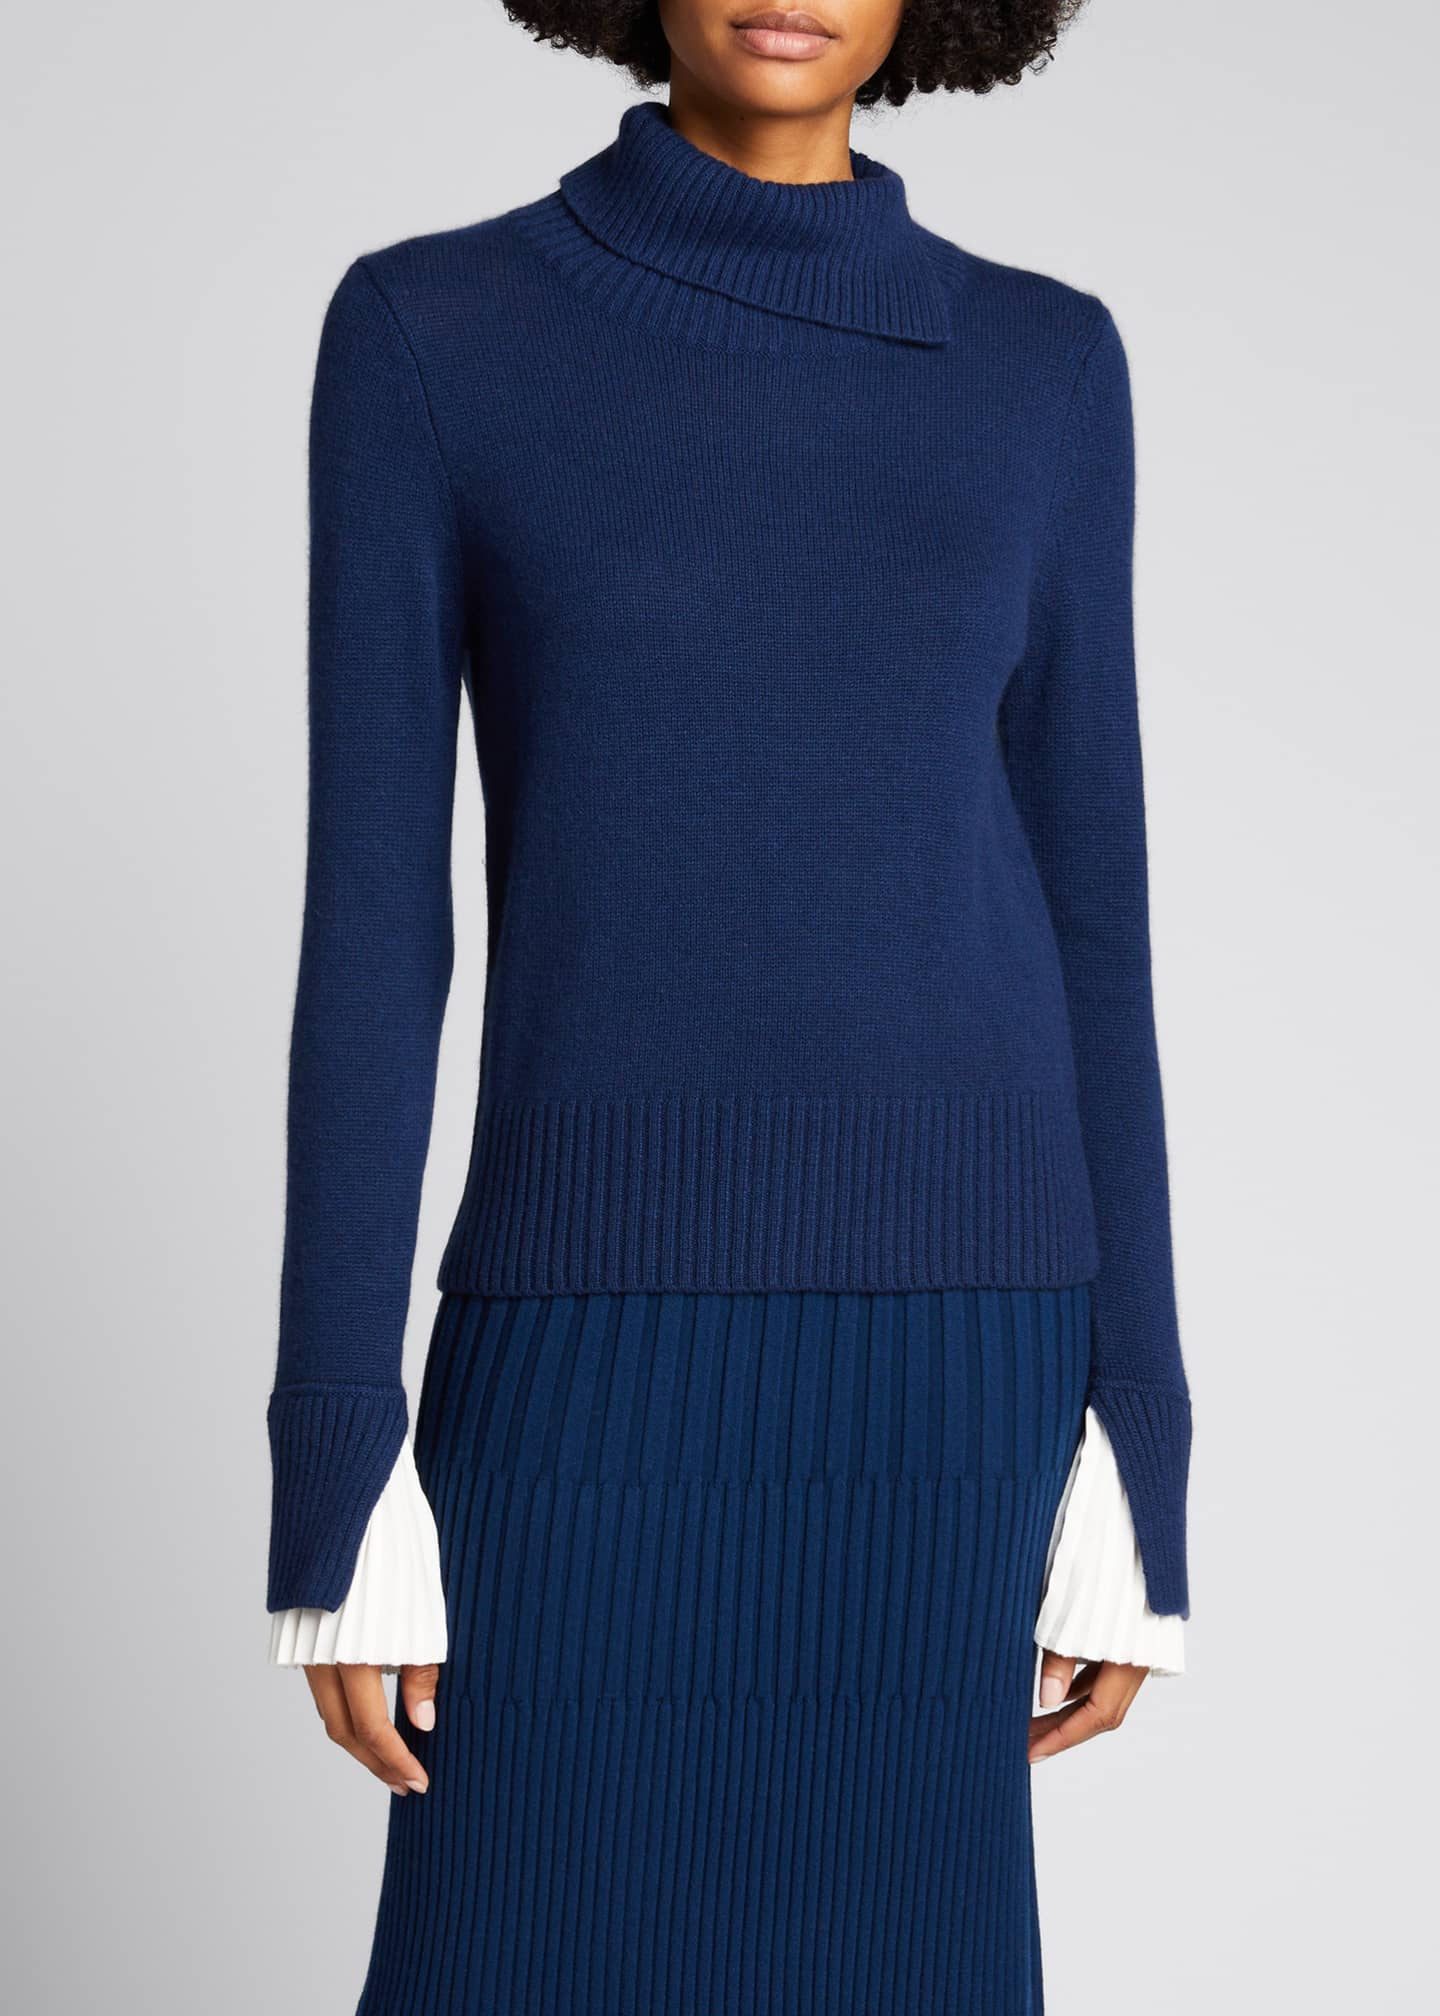 Image 3 of 5: Cashmere Turtleneck Sweater w/ Pleated Cuff Detail